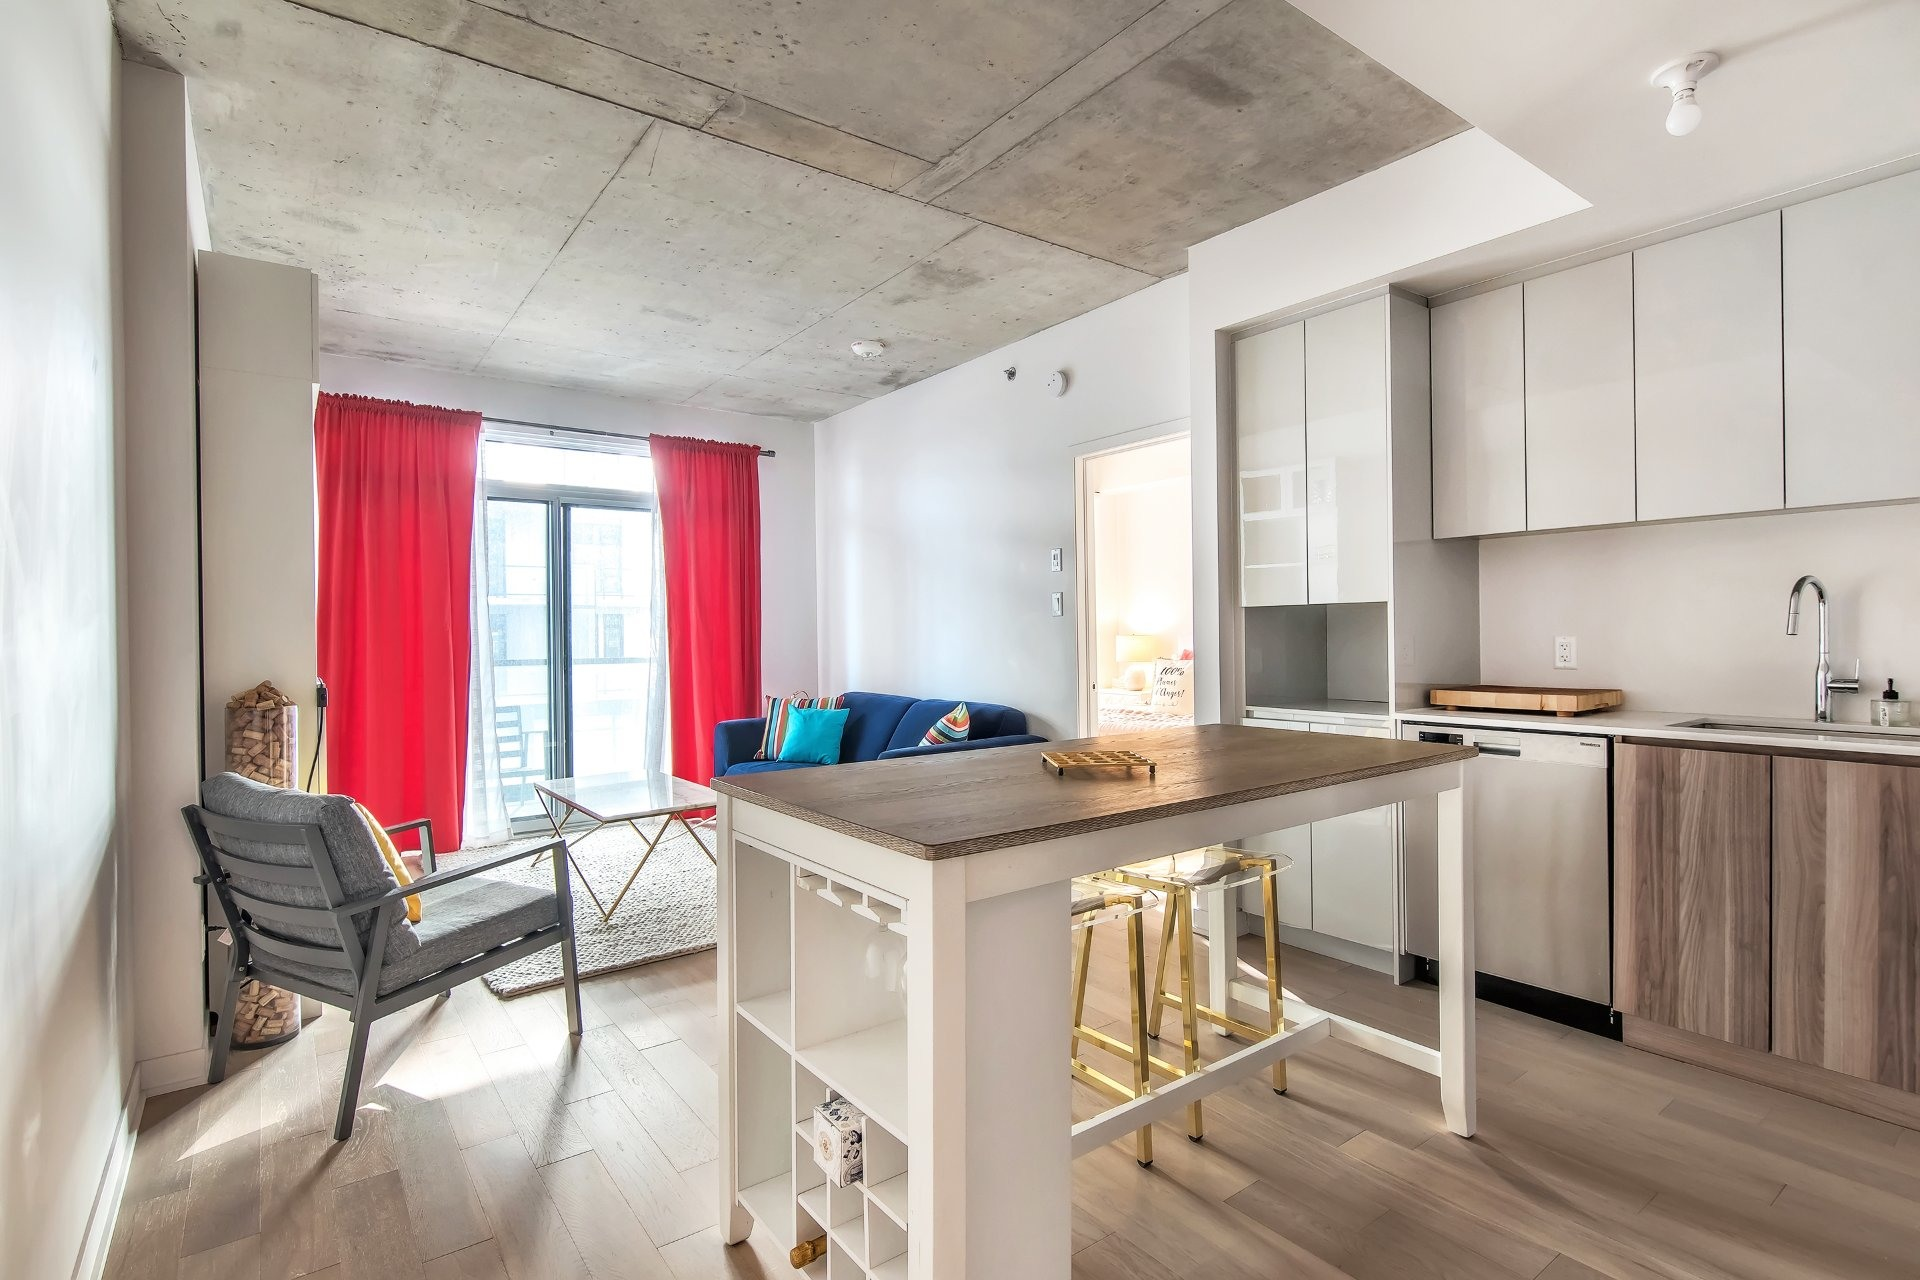 image 11 - Apartment For sale Brossard - 4 rooms